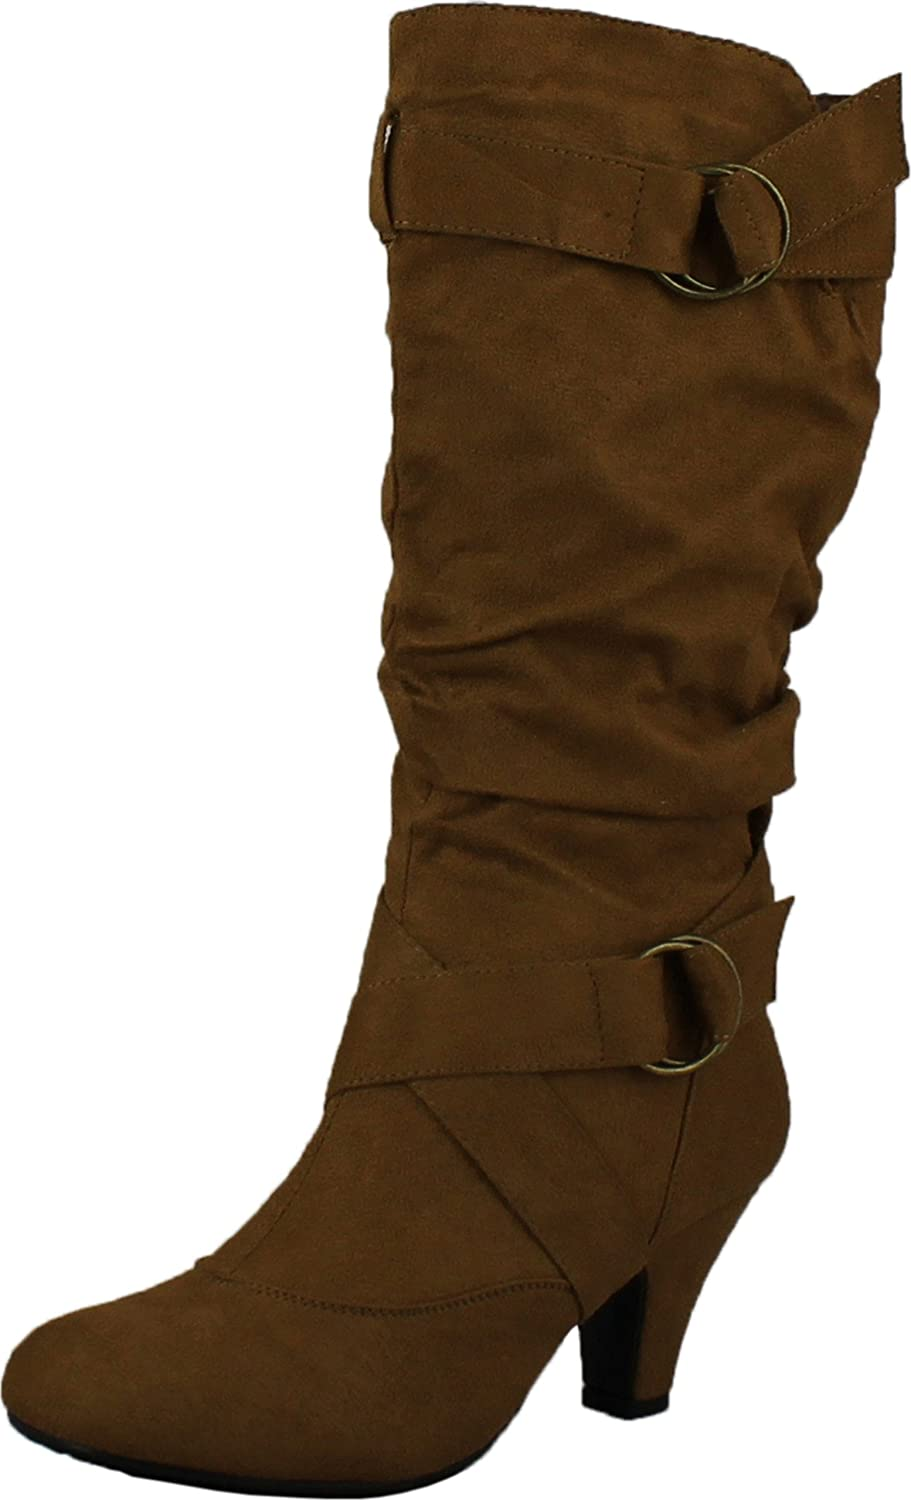 99e2ded6c69 CC Maggie-38 Women Knee High Kitty Heels Wide Shaft Boots